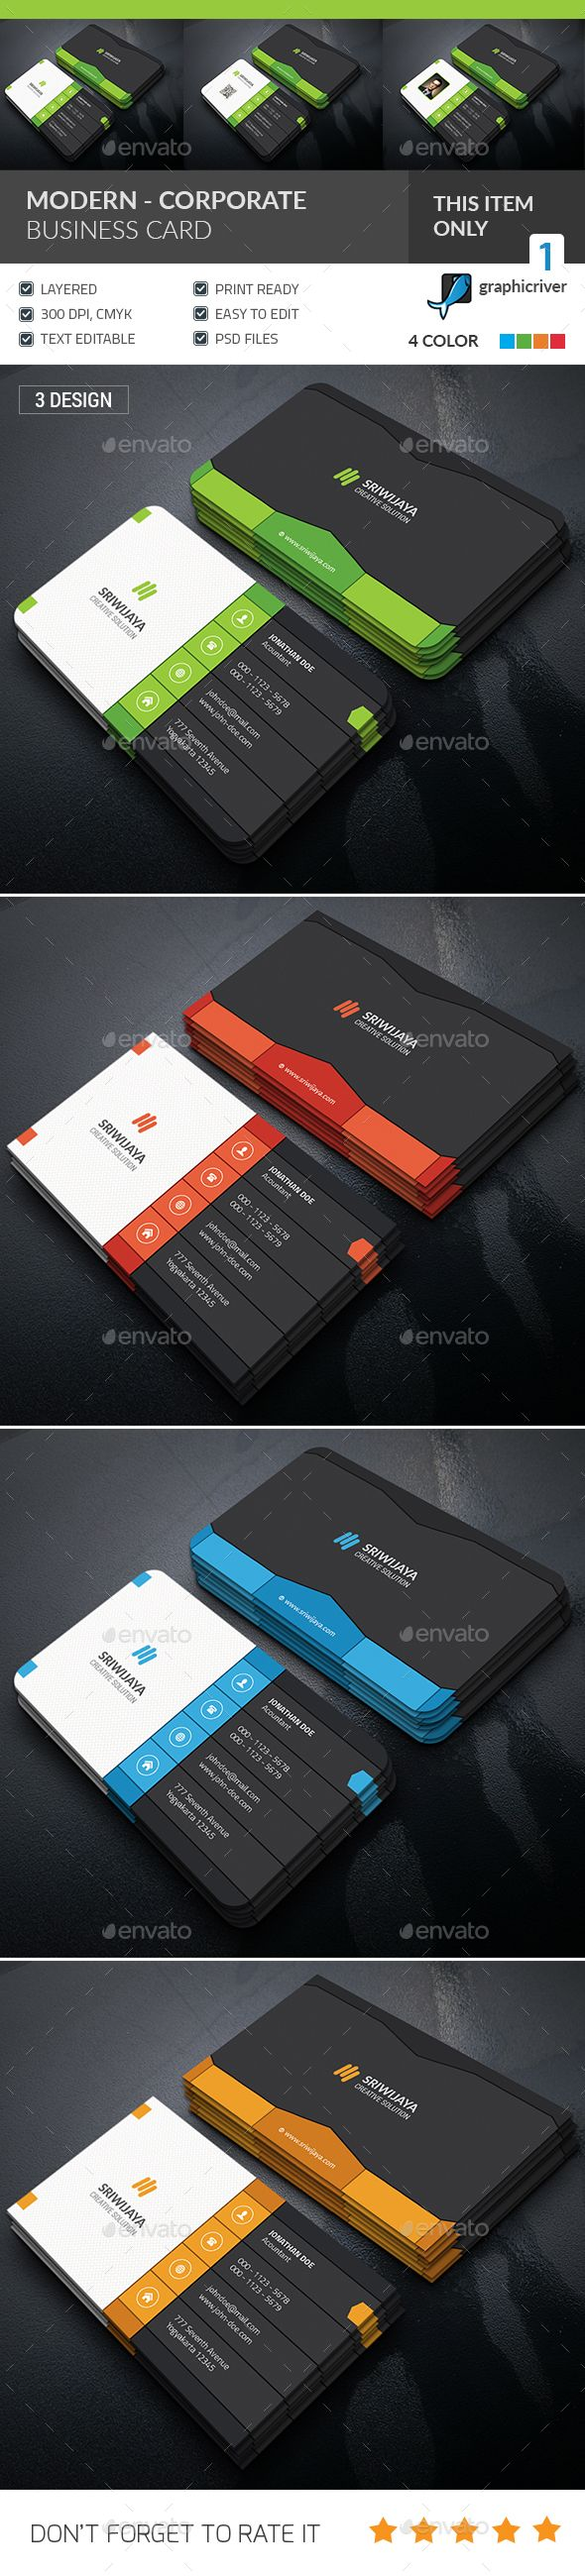 Best 25+ Round business cards ideas on Pinterest | Business cards ...